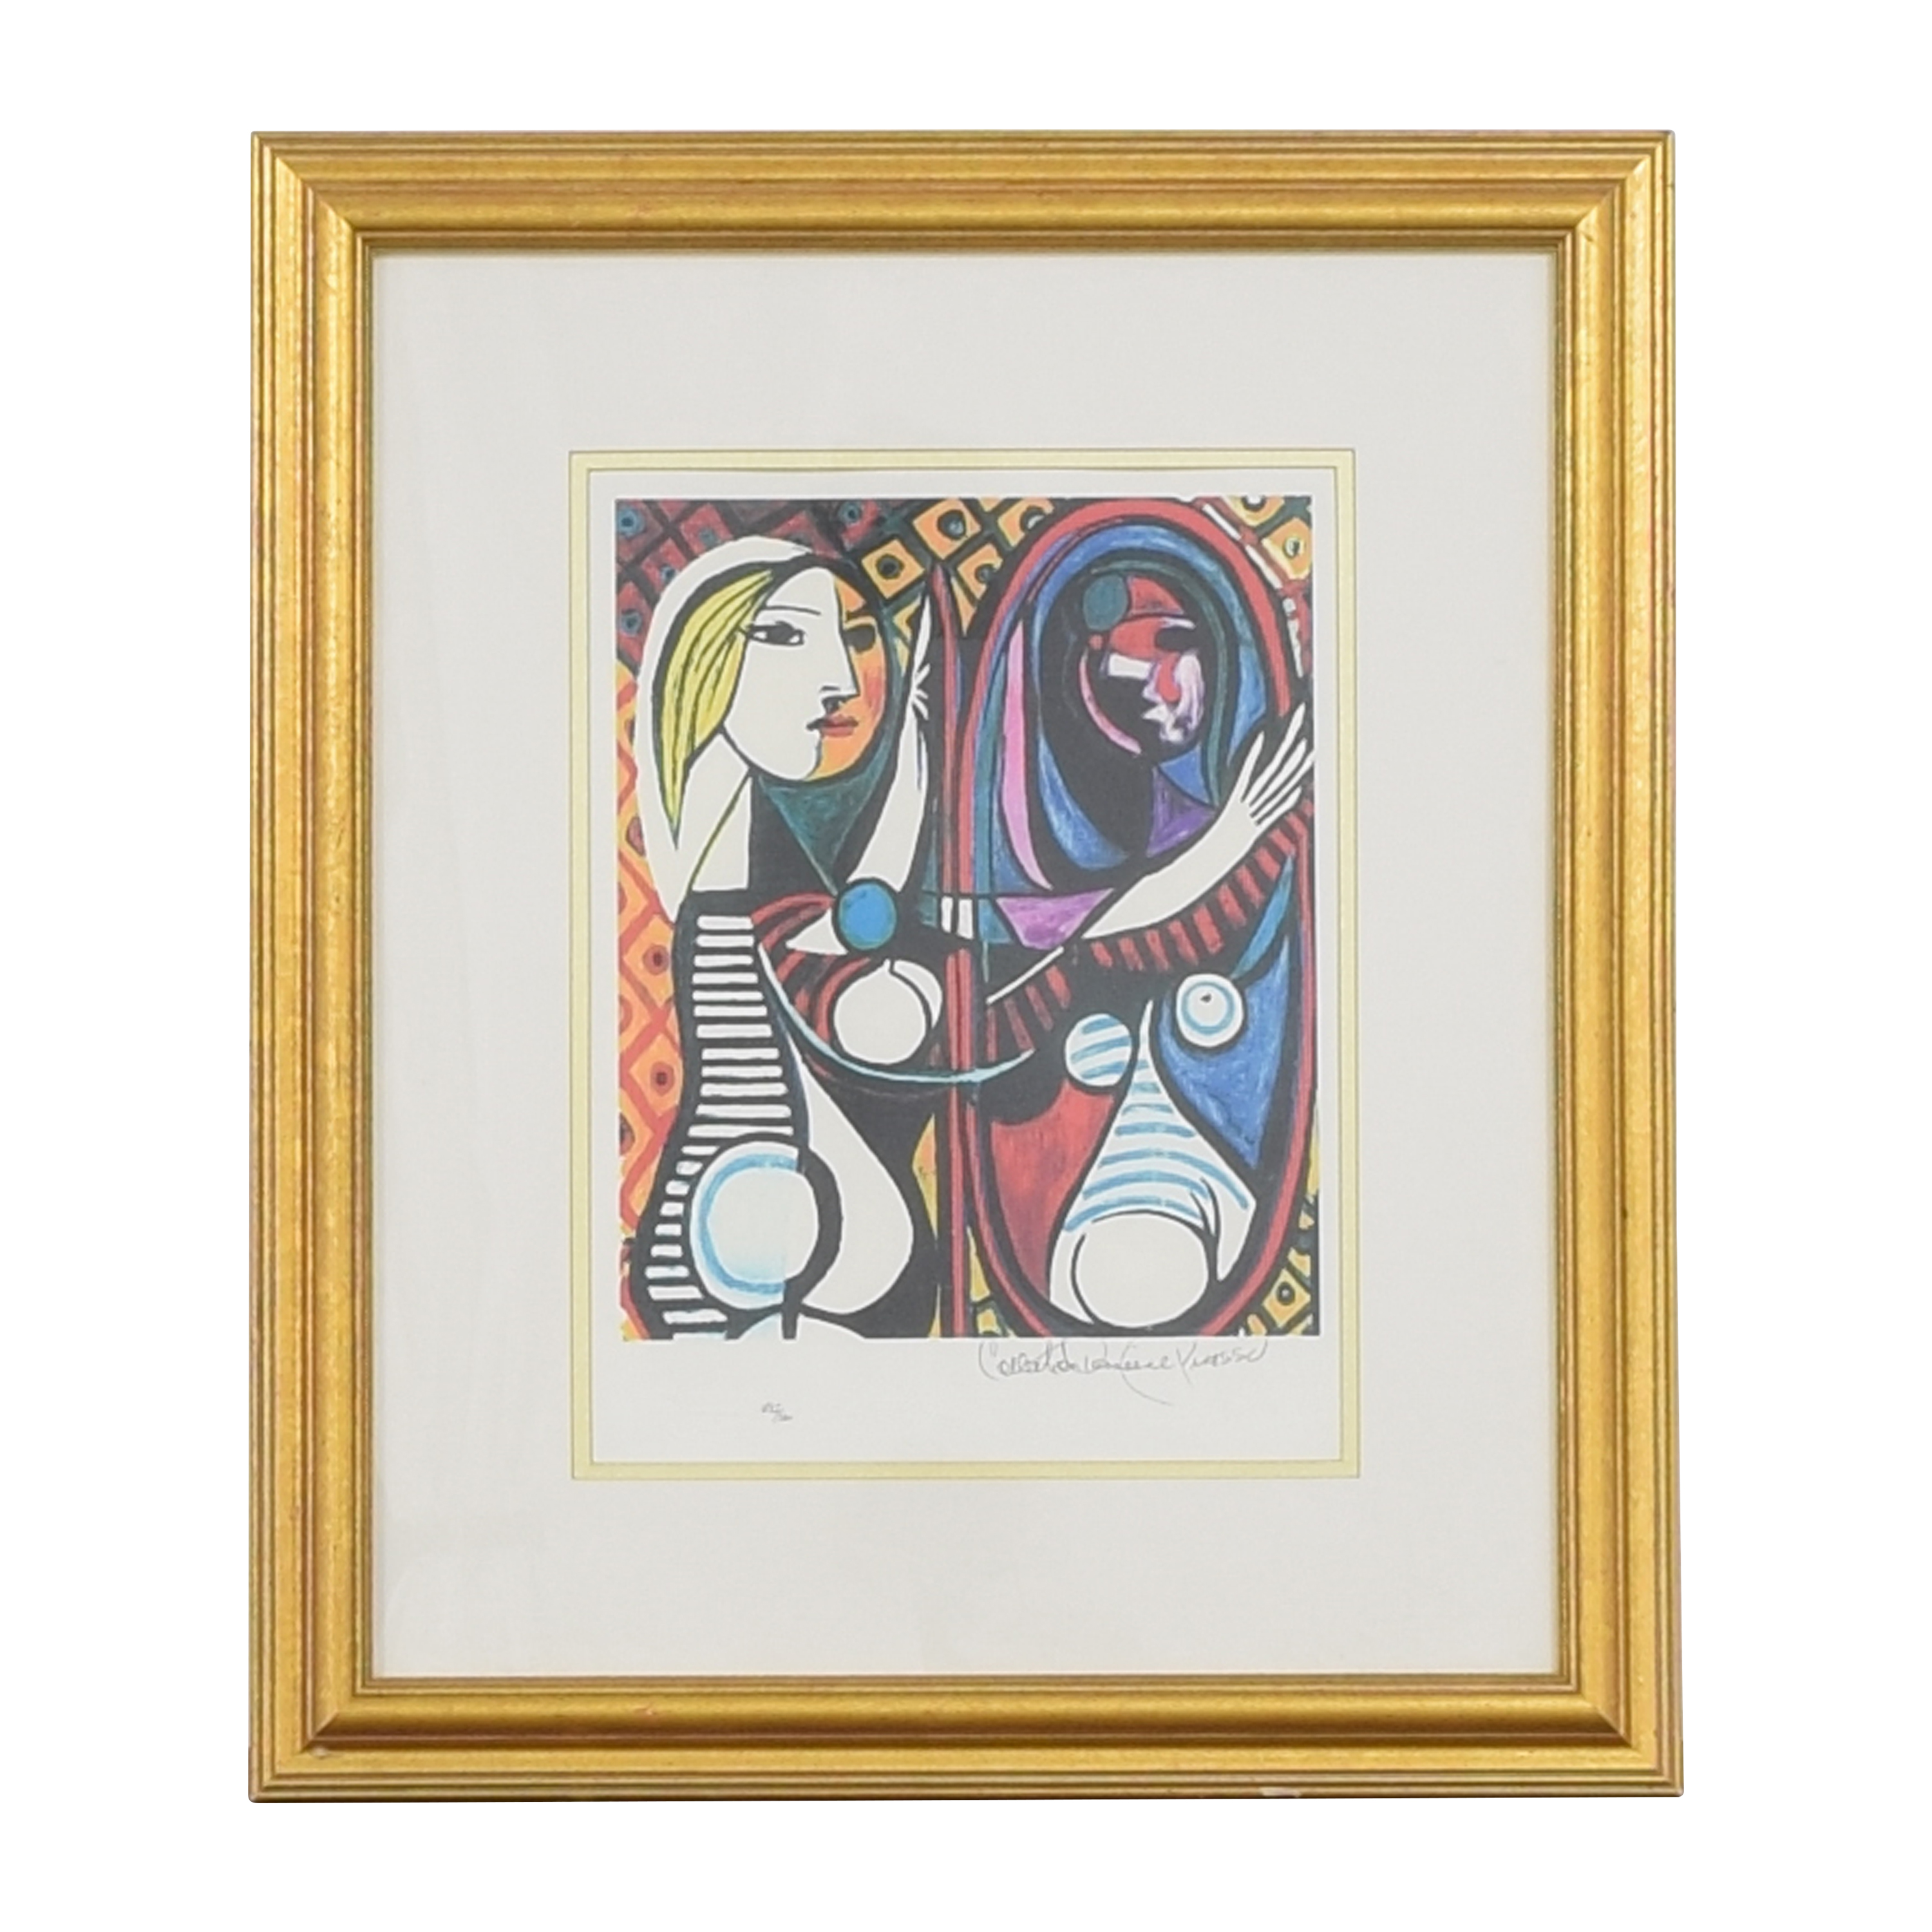 Framed Picasso Print on sale